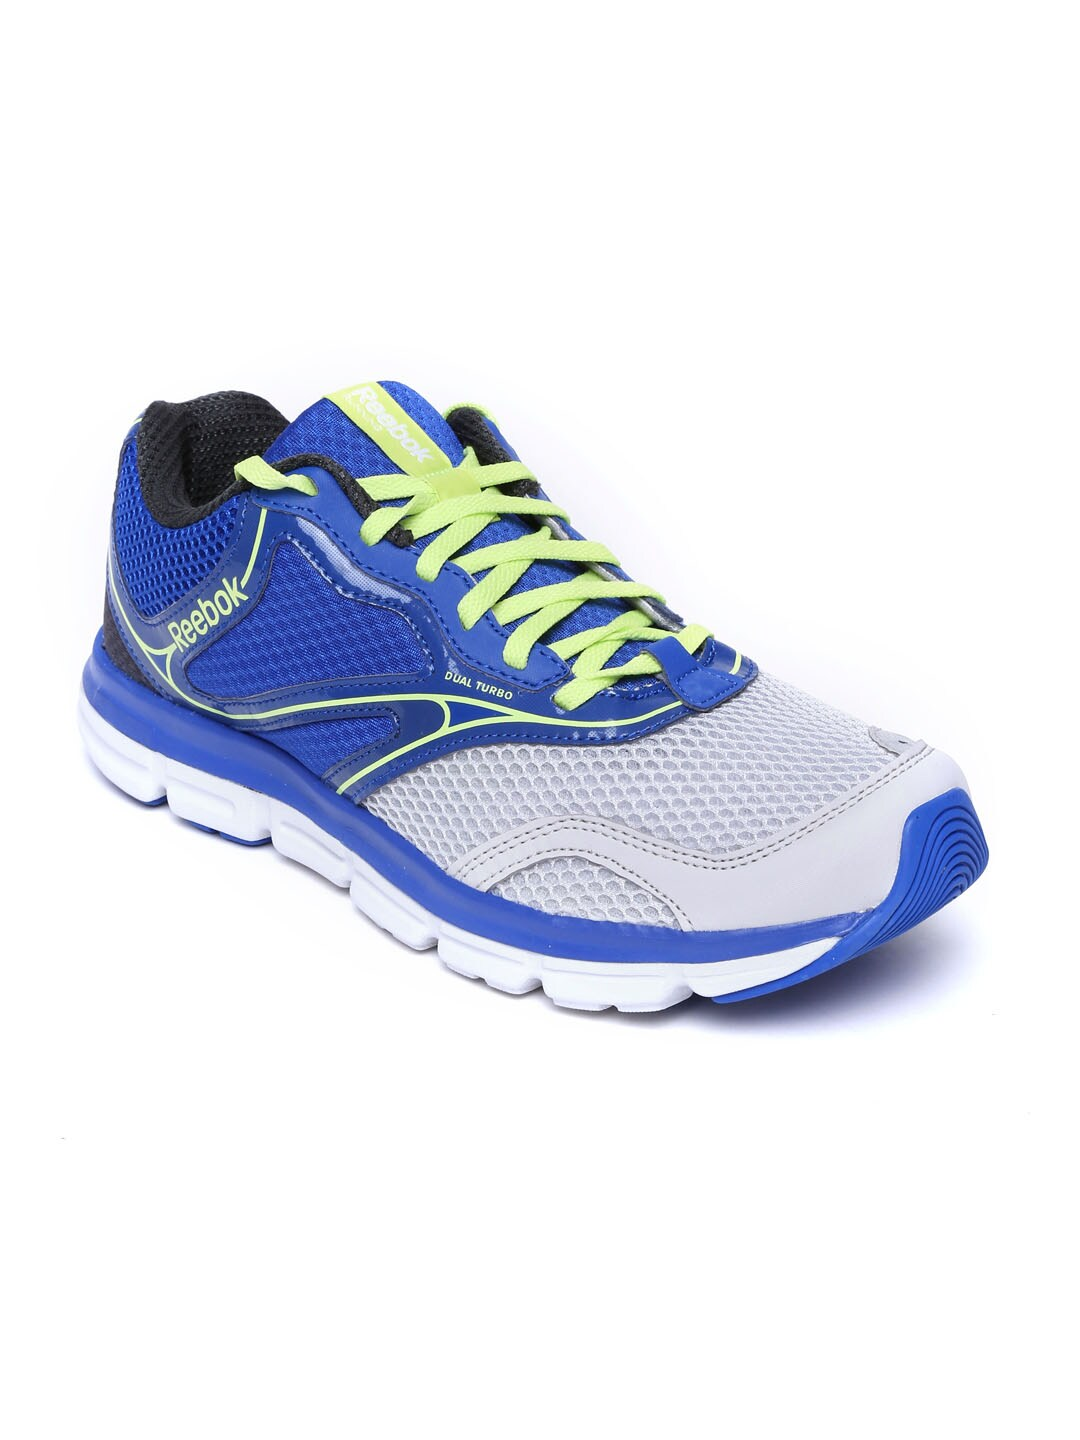 af50c1d7d977a Reebok m43577 Men Blue Dual Turbo 3 0 Running Shoes- Price in India